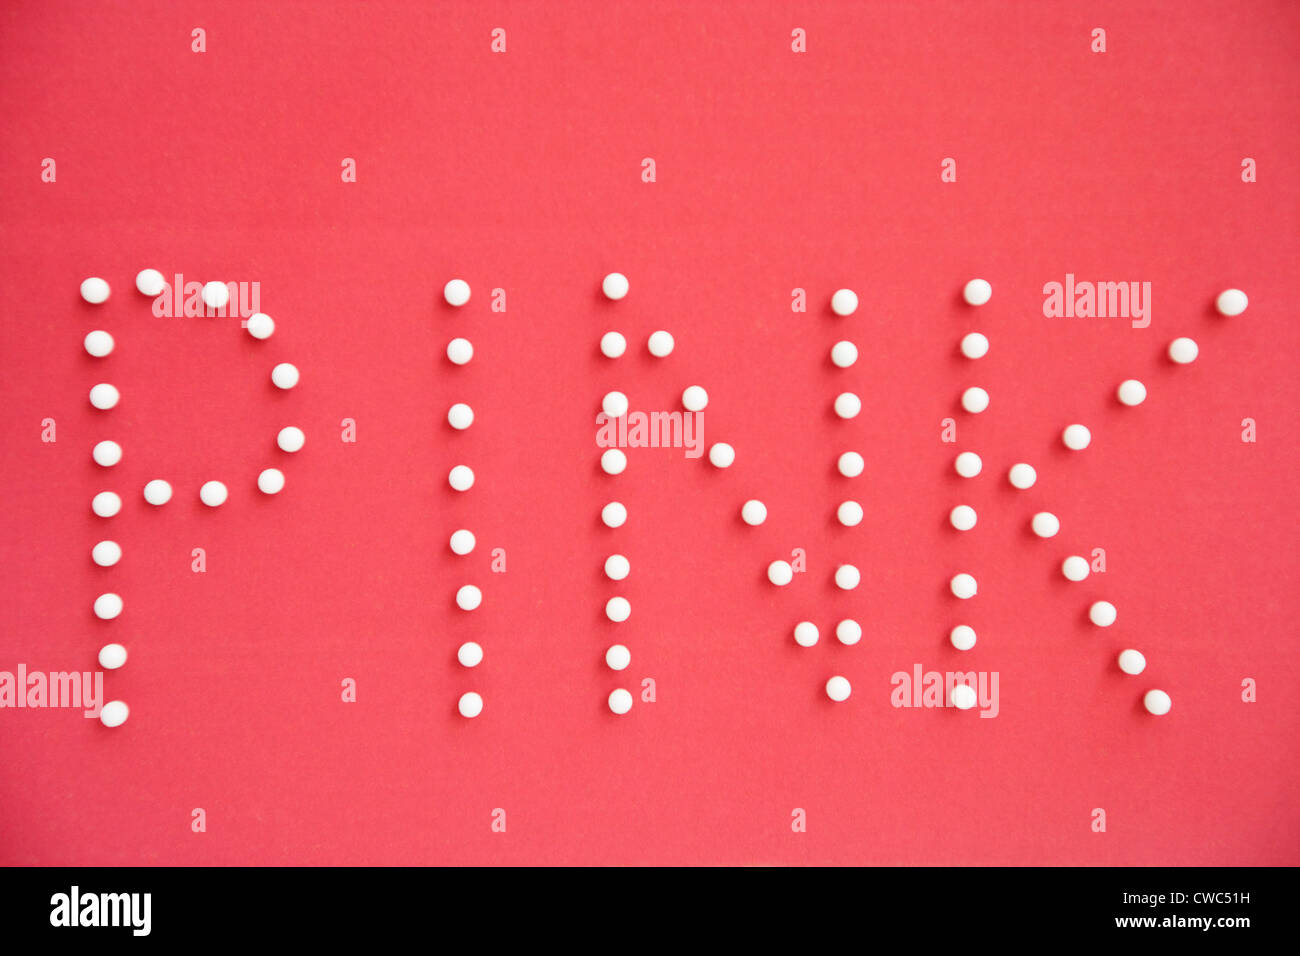 Close-up of push pins spelling pink over colored background - Stock Image